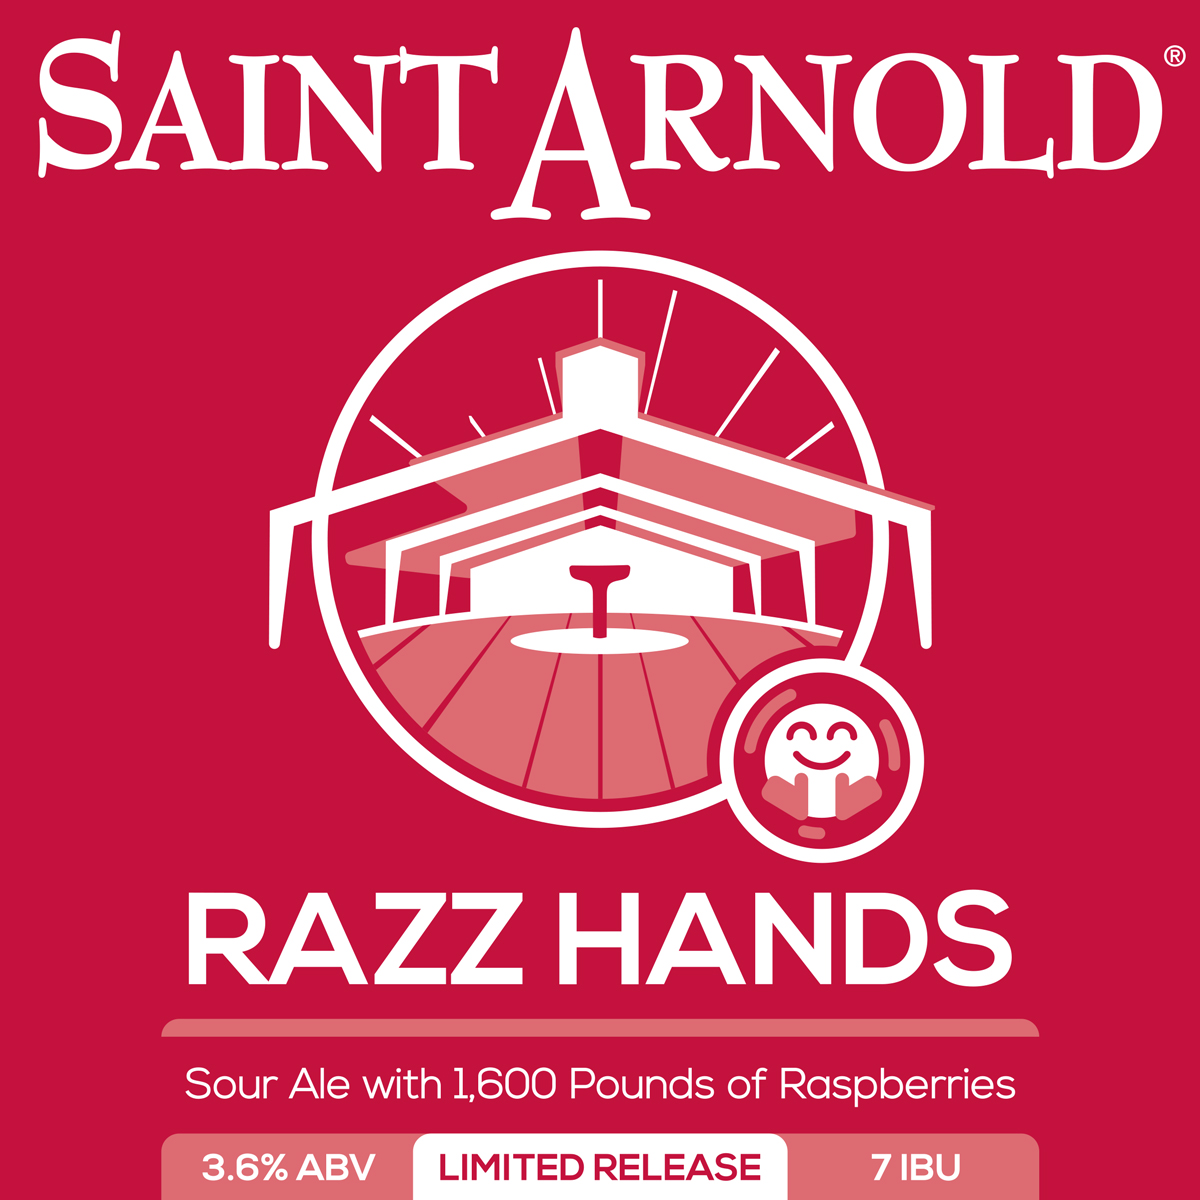 brand_image_limited_release_razz_hands